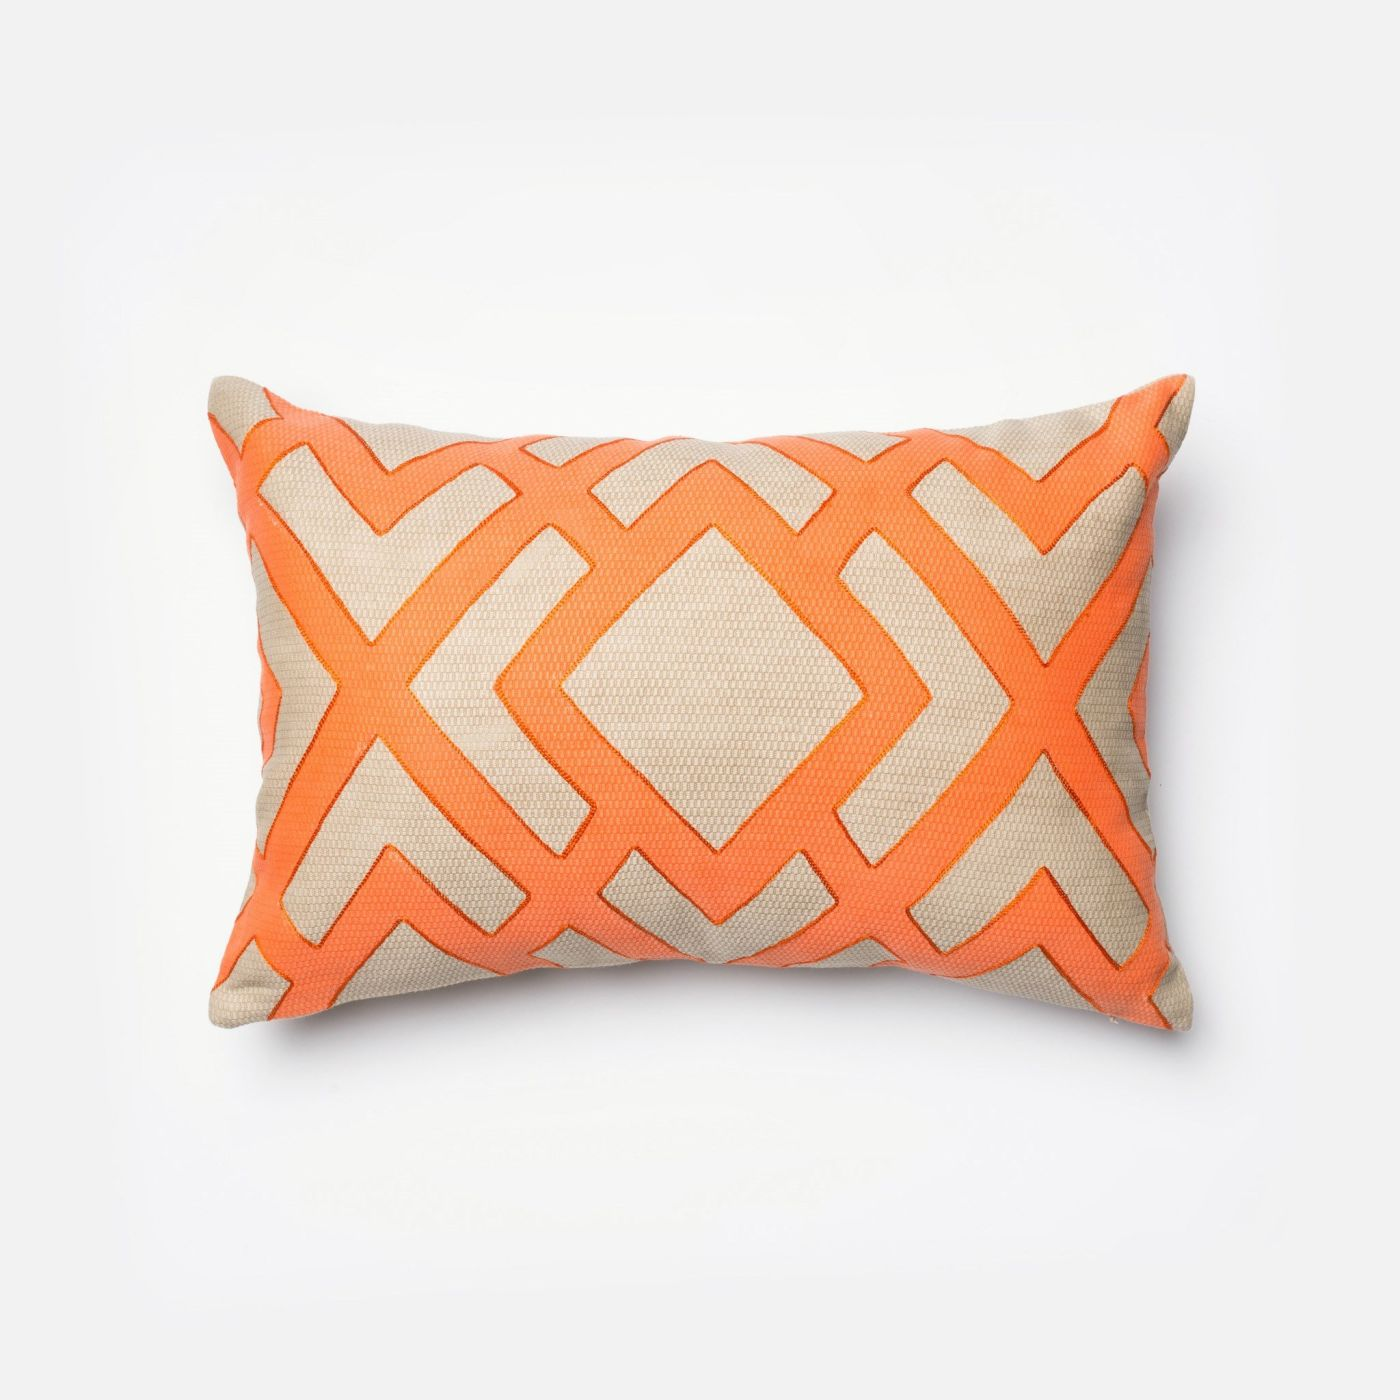 Throw Pillows Under 5 Dollars : Loloi Rugs Loloi Beige / Orange Decorative Throw Pillow (P0131) DSETP0131BEORPIL3. Only $69.00 ...